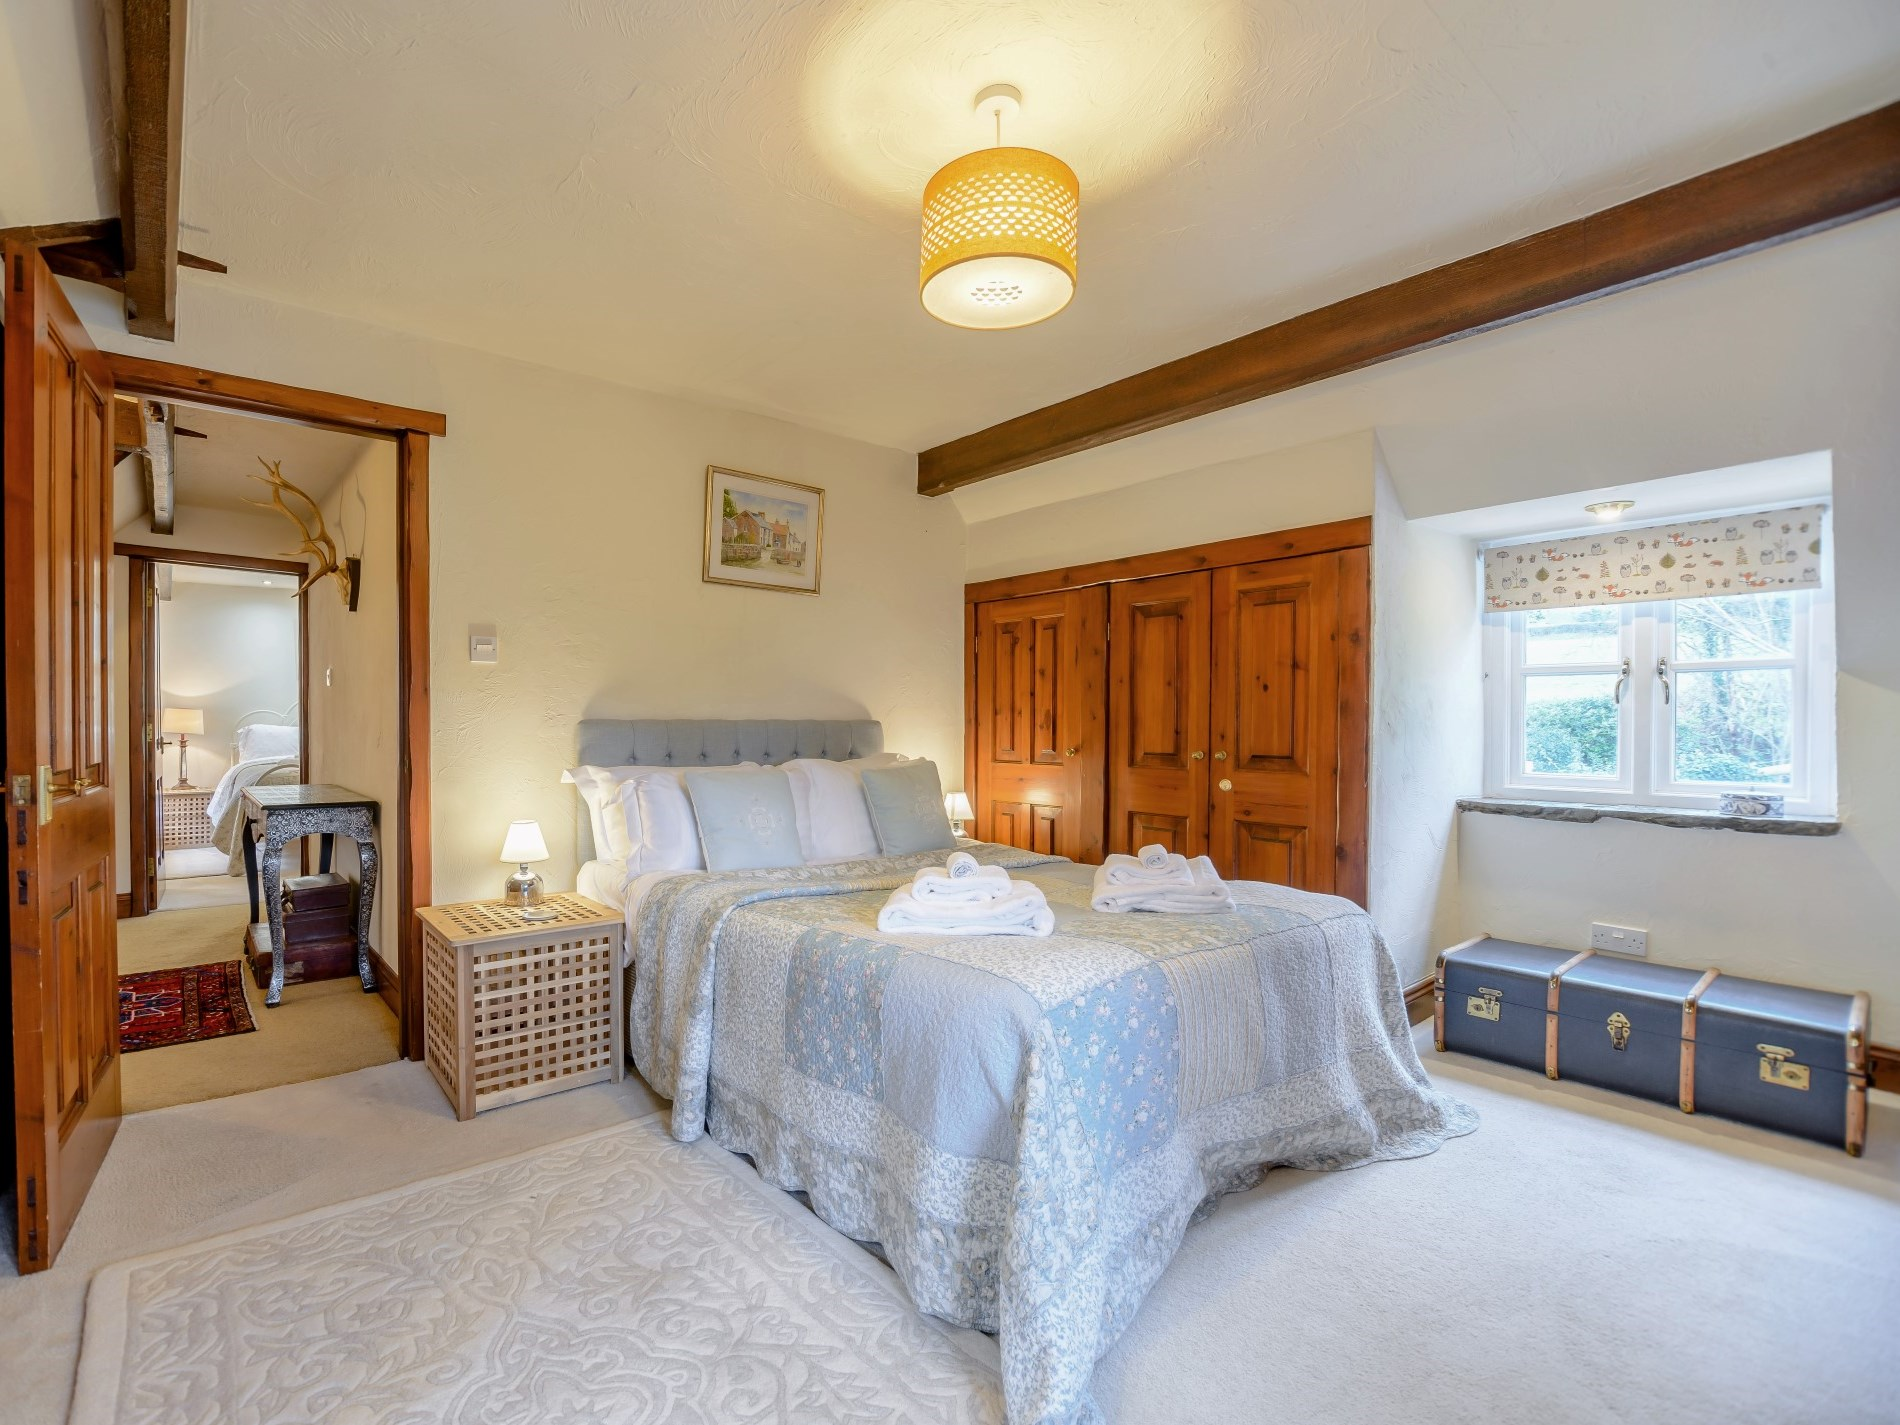 5 Bedroom Cottage in Usk, Pembrokeshire and the South